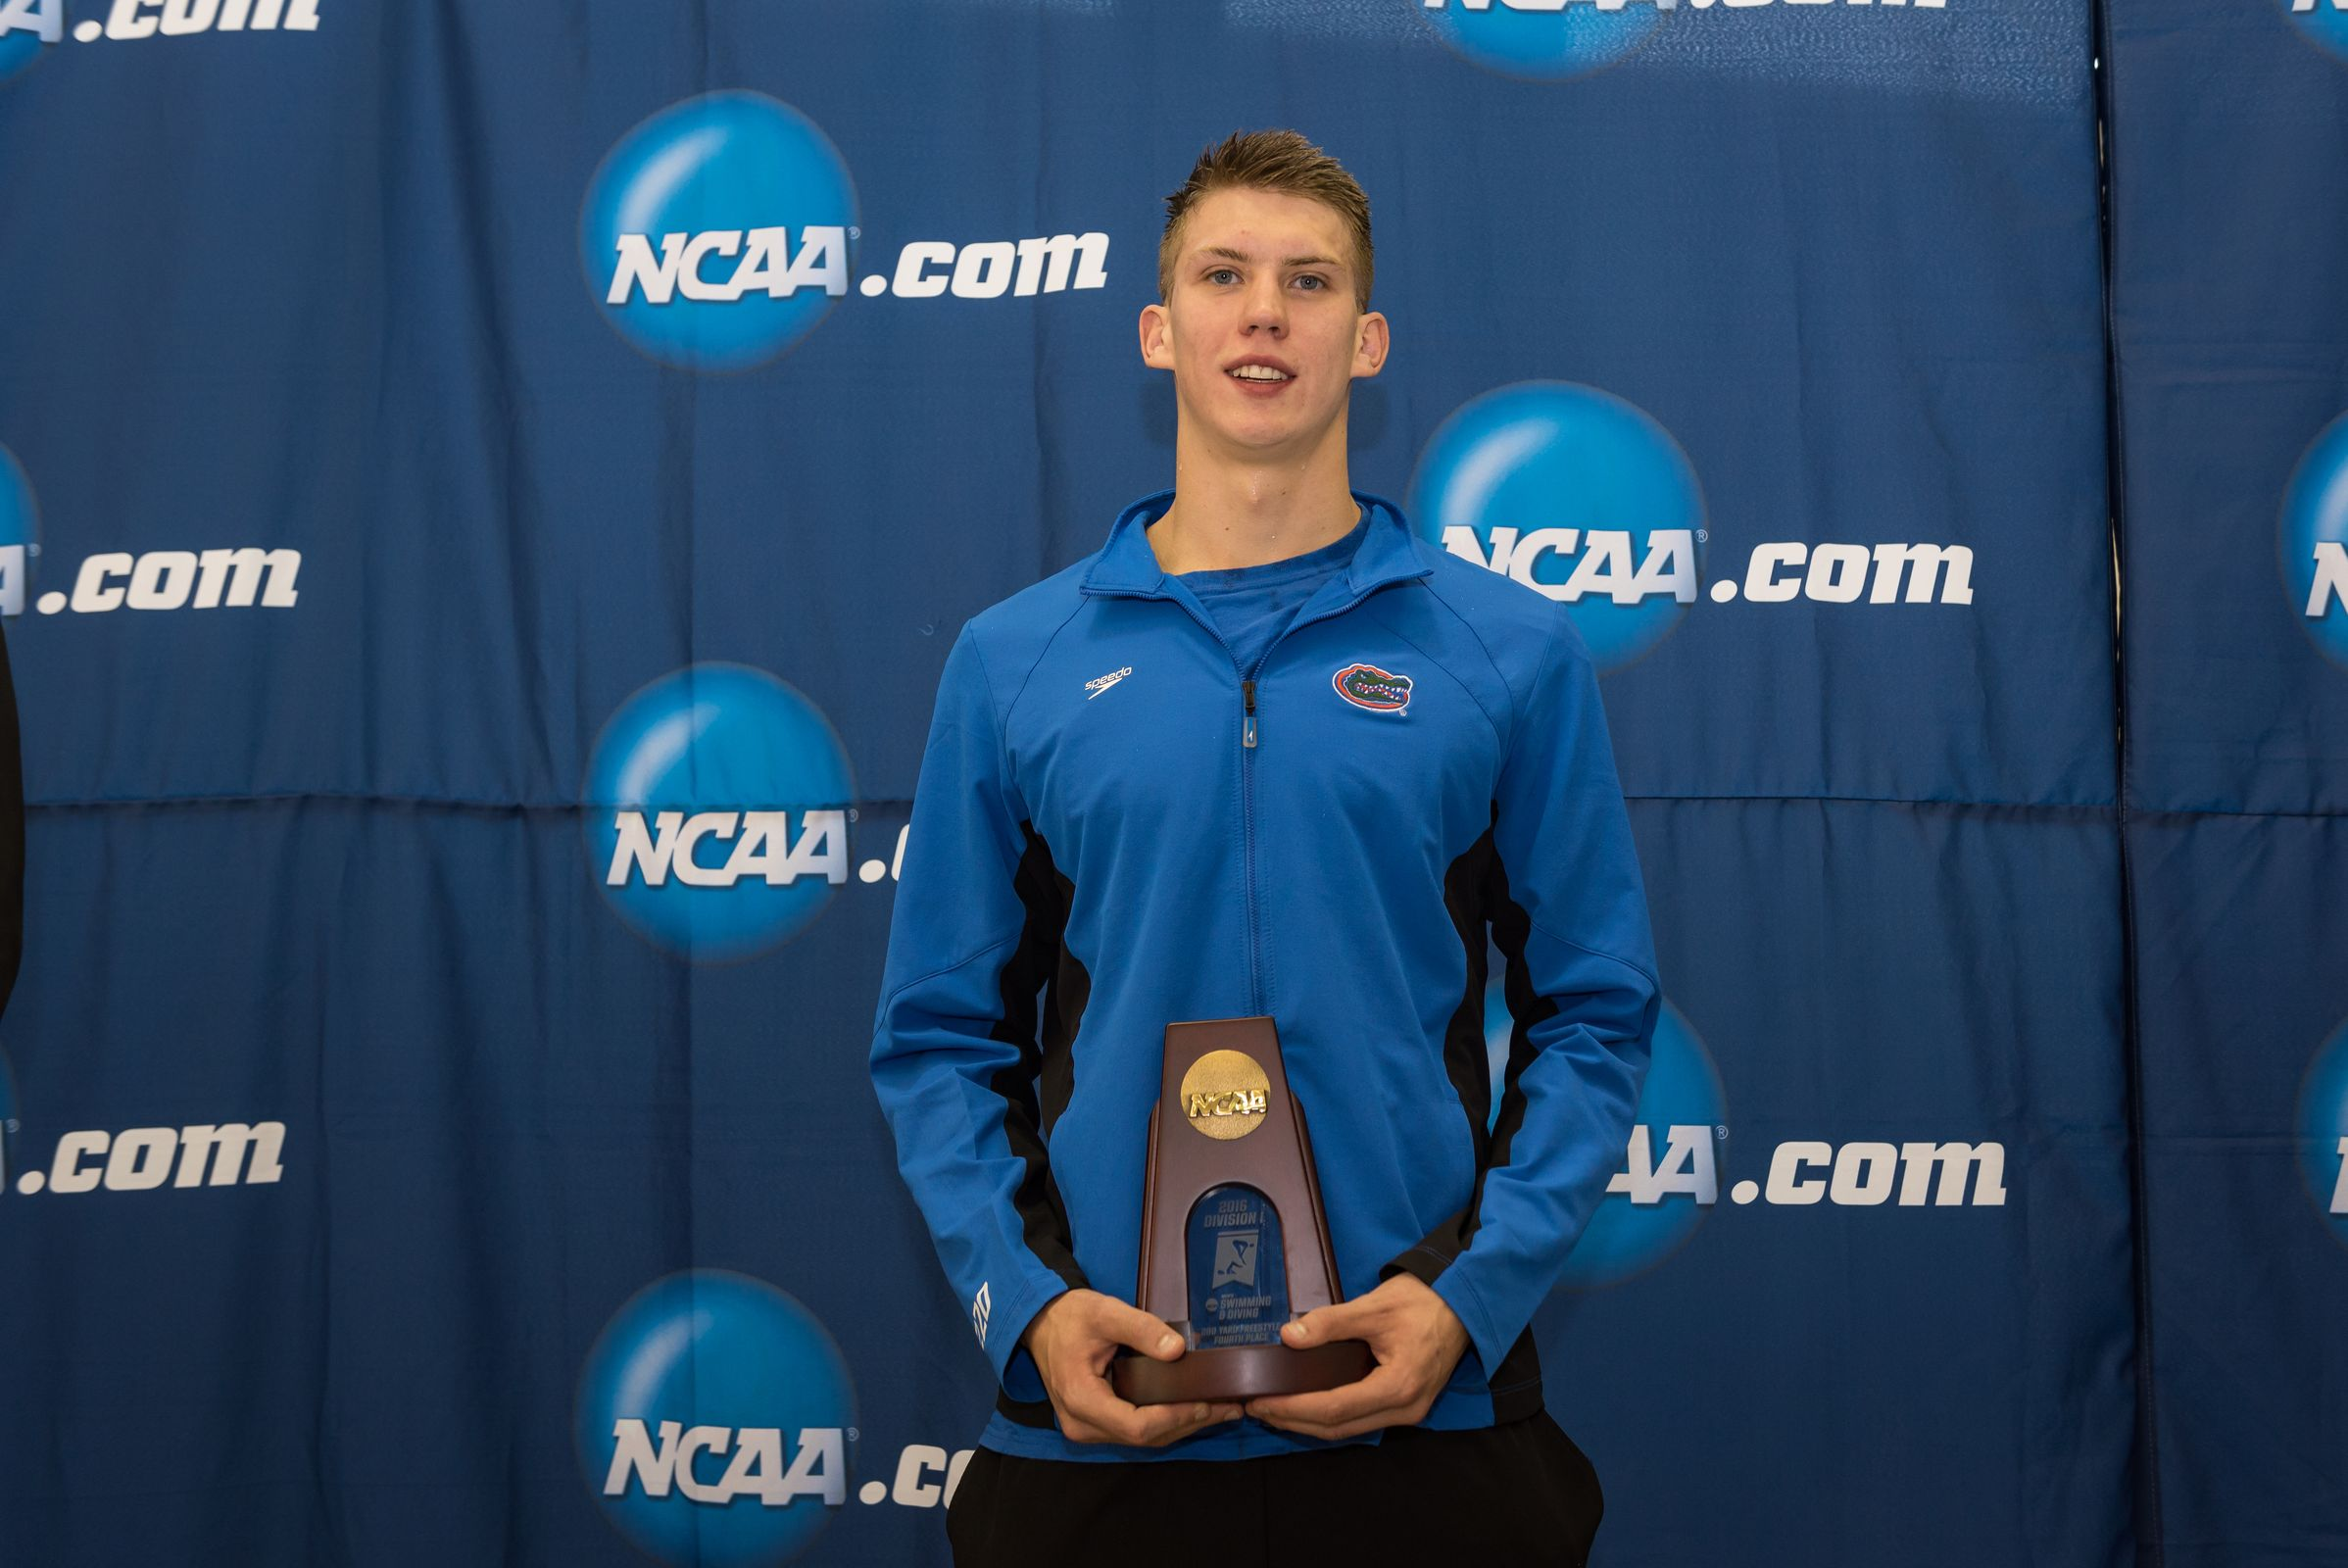 2016.03.25-NCAA-Mens-Swimming-Championships_Florida-Jan-Switkowski.jpg